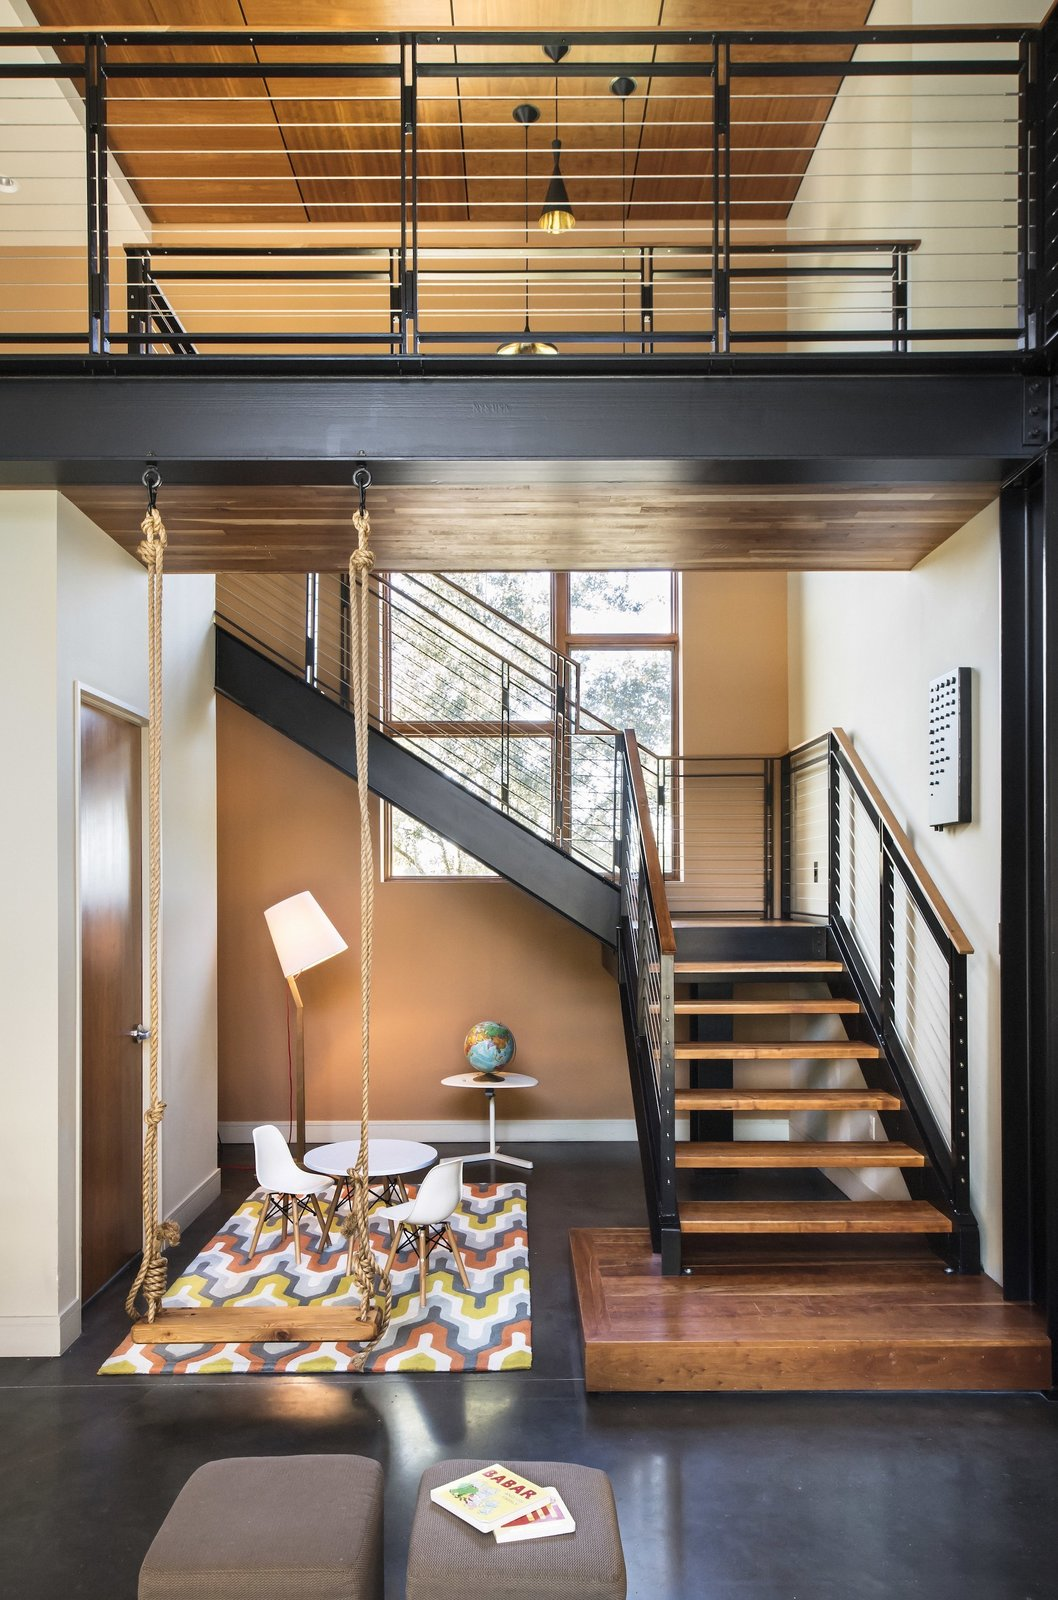 "A wooden swing is anchored into the exposed, steel cross beam that supports the second story. ""It speaks to the playful whimsy of being a grown child,"" says Young, who found the piece at Peg and Awl -- a trove of repurposed treasures -- and thought it would be fun for the space. His kids like it too.   House ideas from 1600 Lakeside"